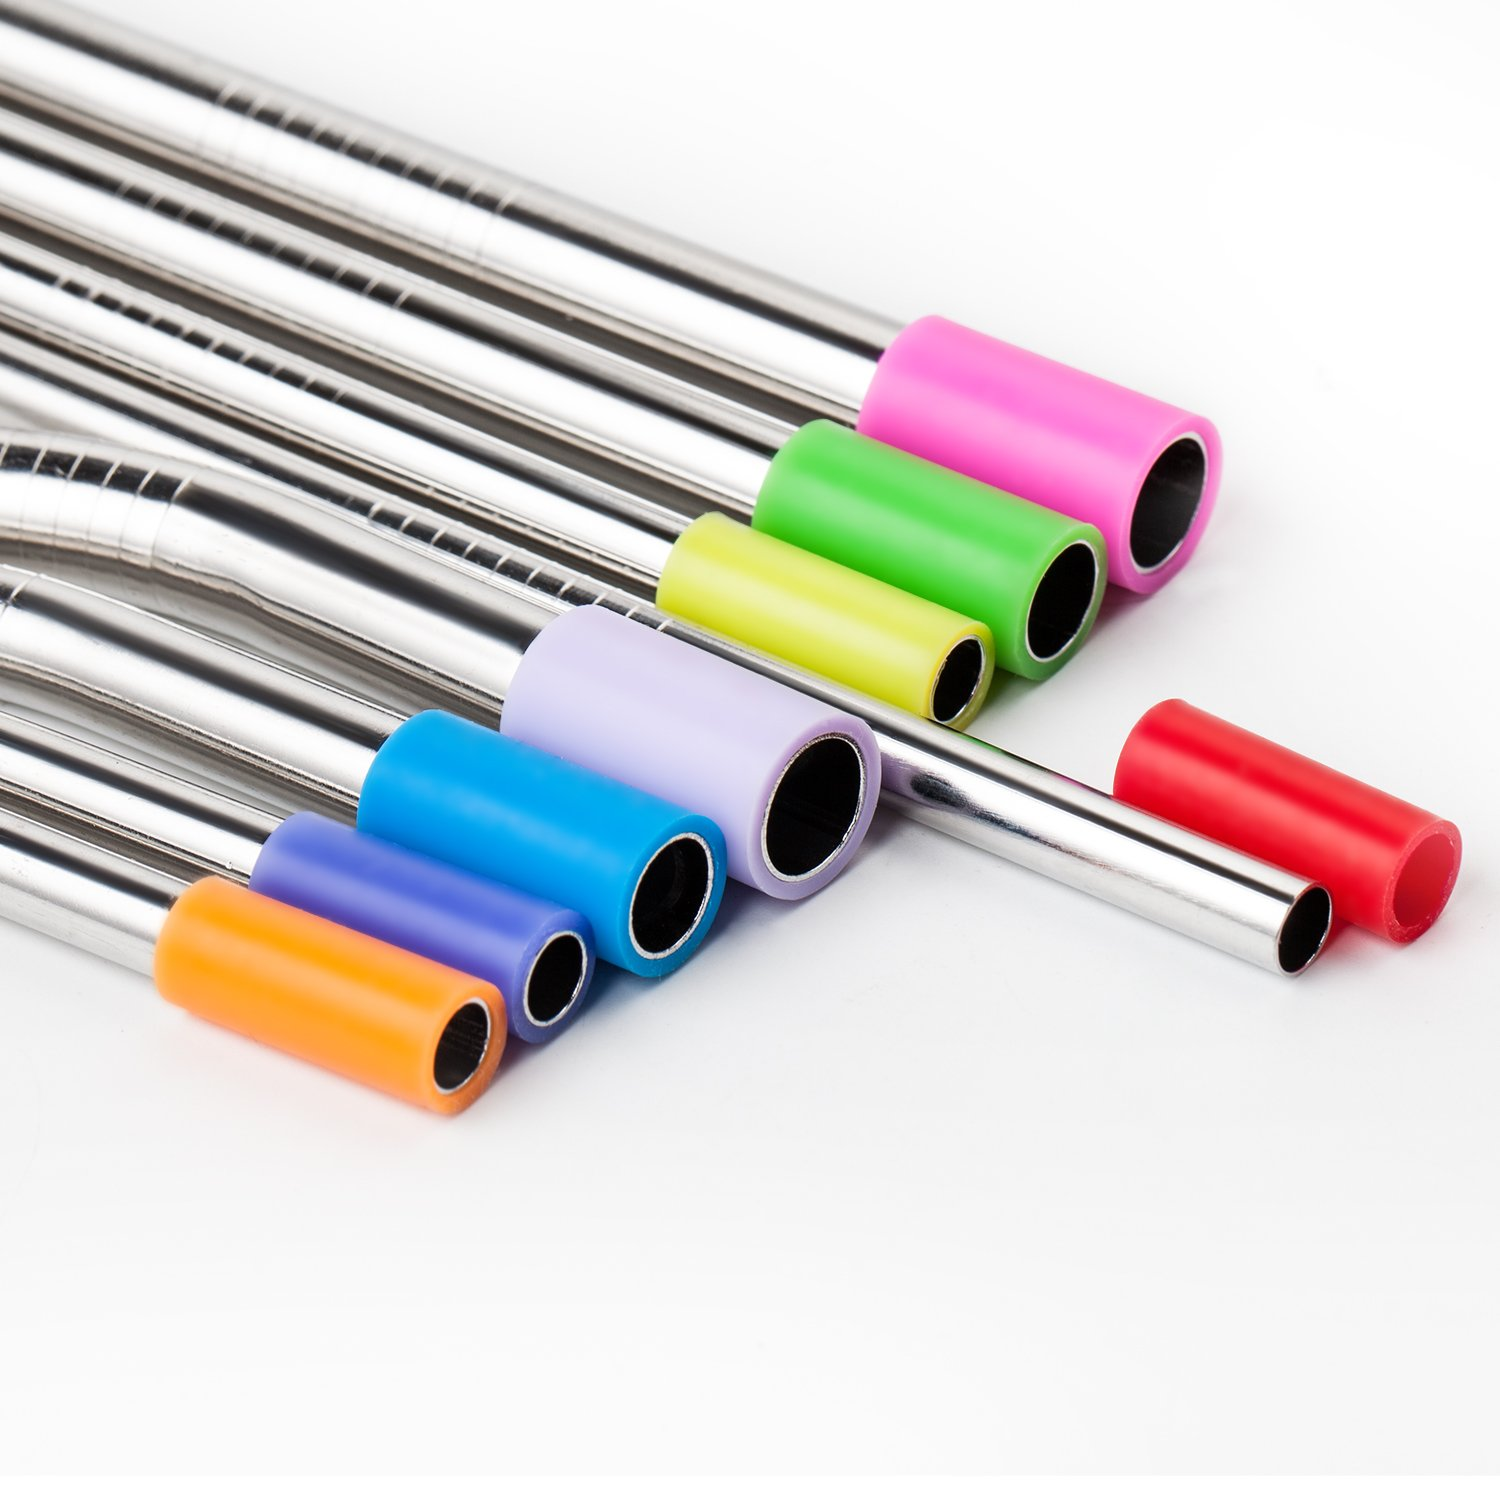 YIHONG Stainless Steel Metal Straws Set of 8 Pcs Reusable Drinking Straws with 2 Cleaning Brushes Silicon Cover for 20 30oz Tumblers 3 Sizes 6mm|8mm|9.5mm 2 Lengths 8.5 Inch|10 Inch